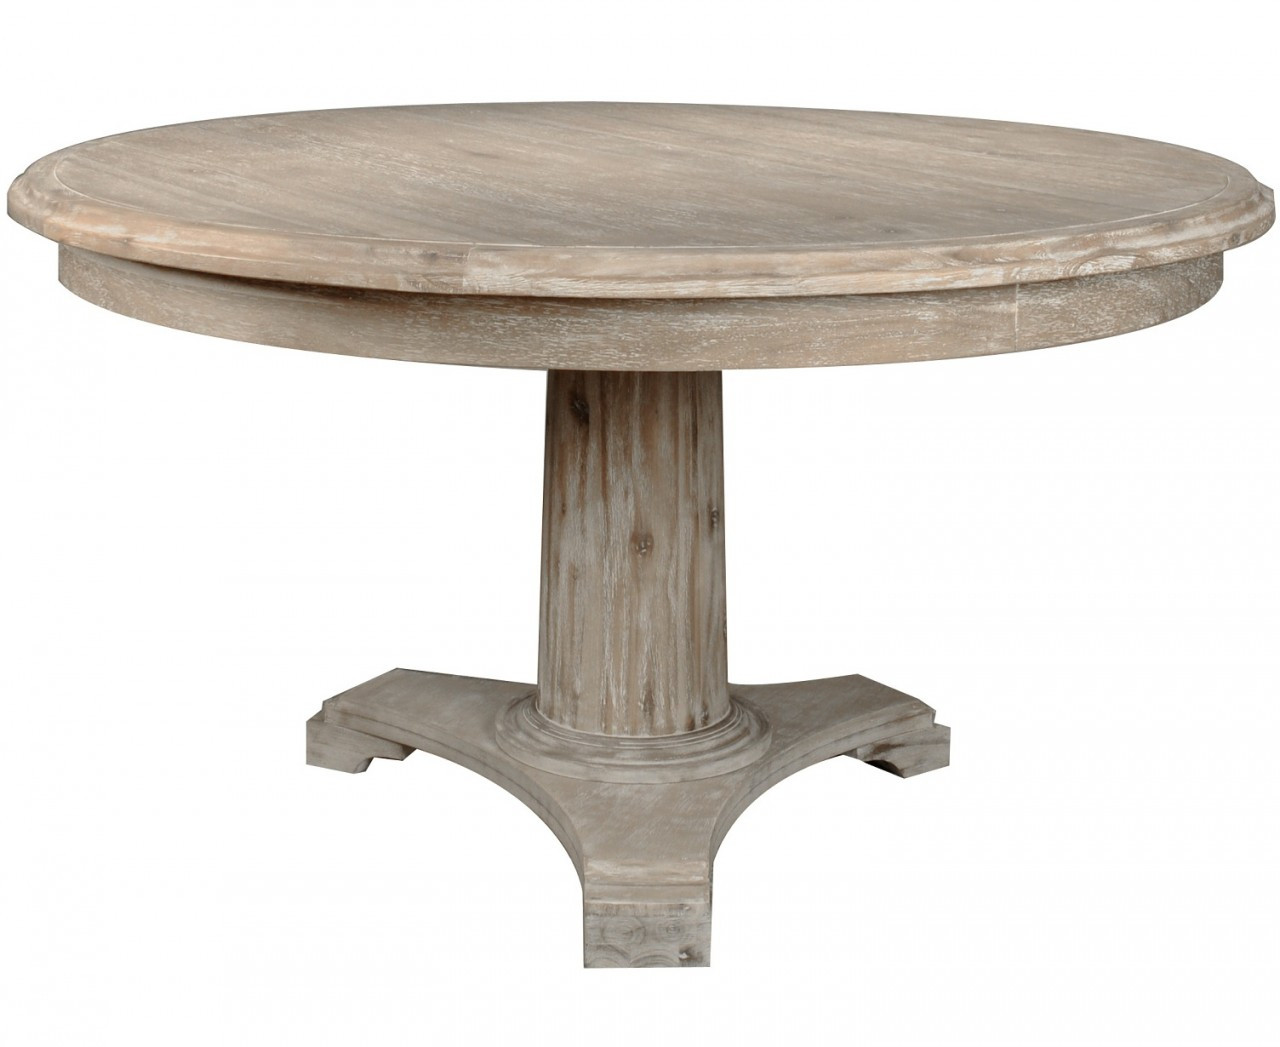 Belmont round dining table 54 round column pedestal for Dining room table pedestal bases